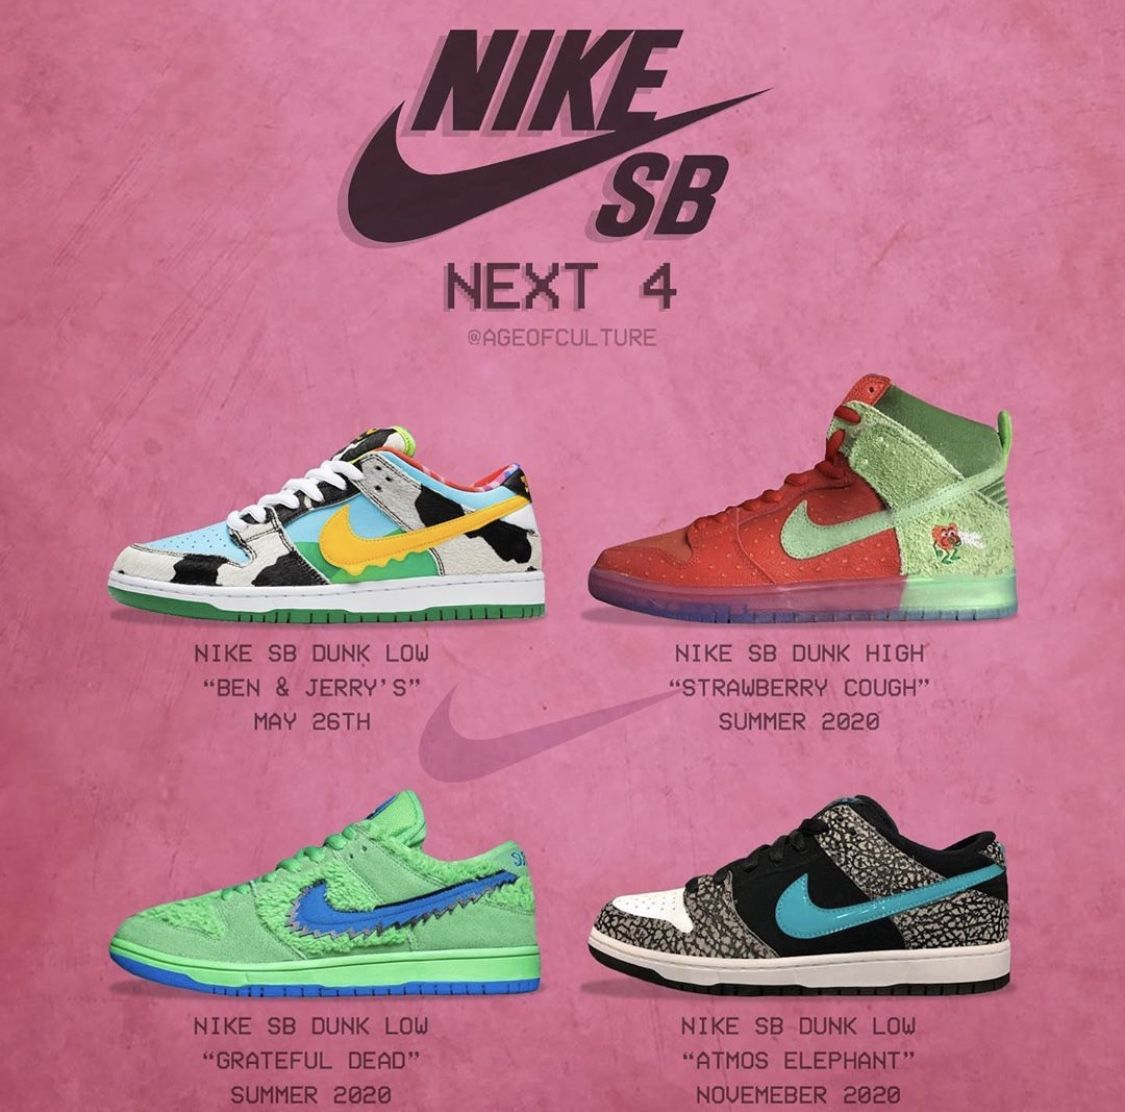 Upcoming sneaker releases